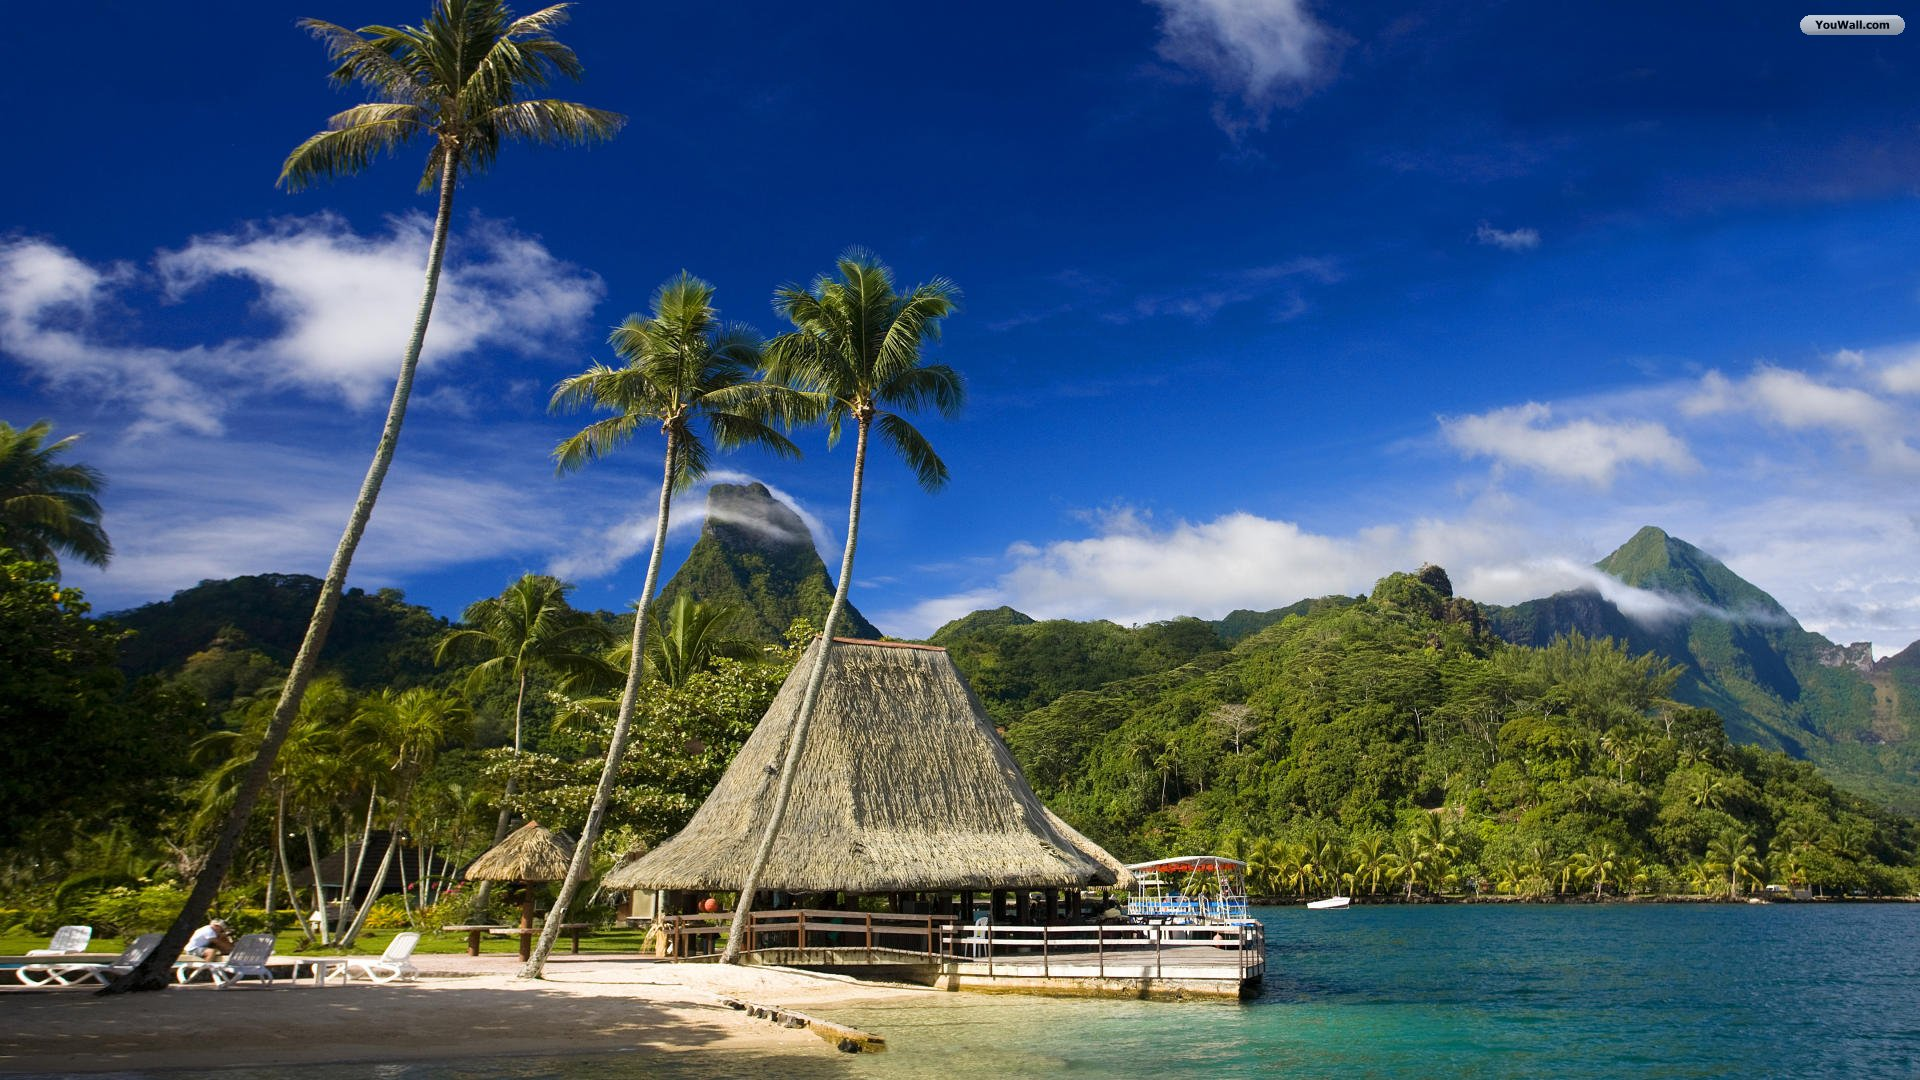 hd tropical island beach paradise wallpapers and backgrounds